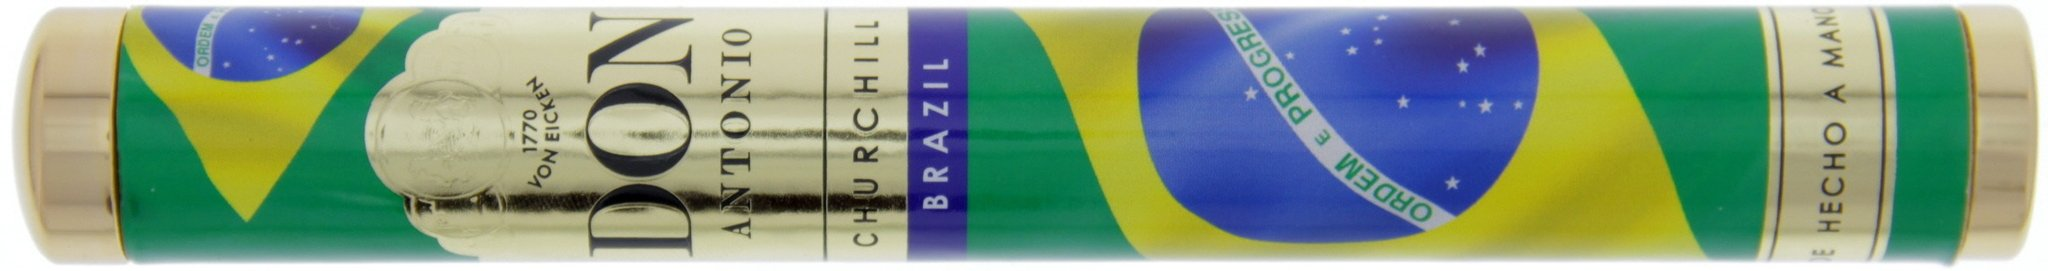 Don Antonio Churchill Tubes Colours (WM-Flaggen 2014) Brazil